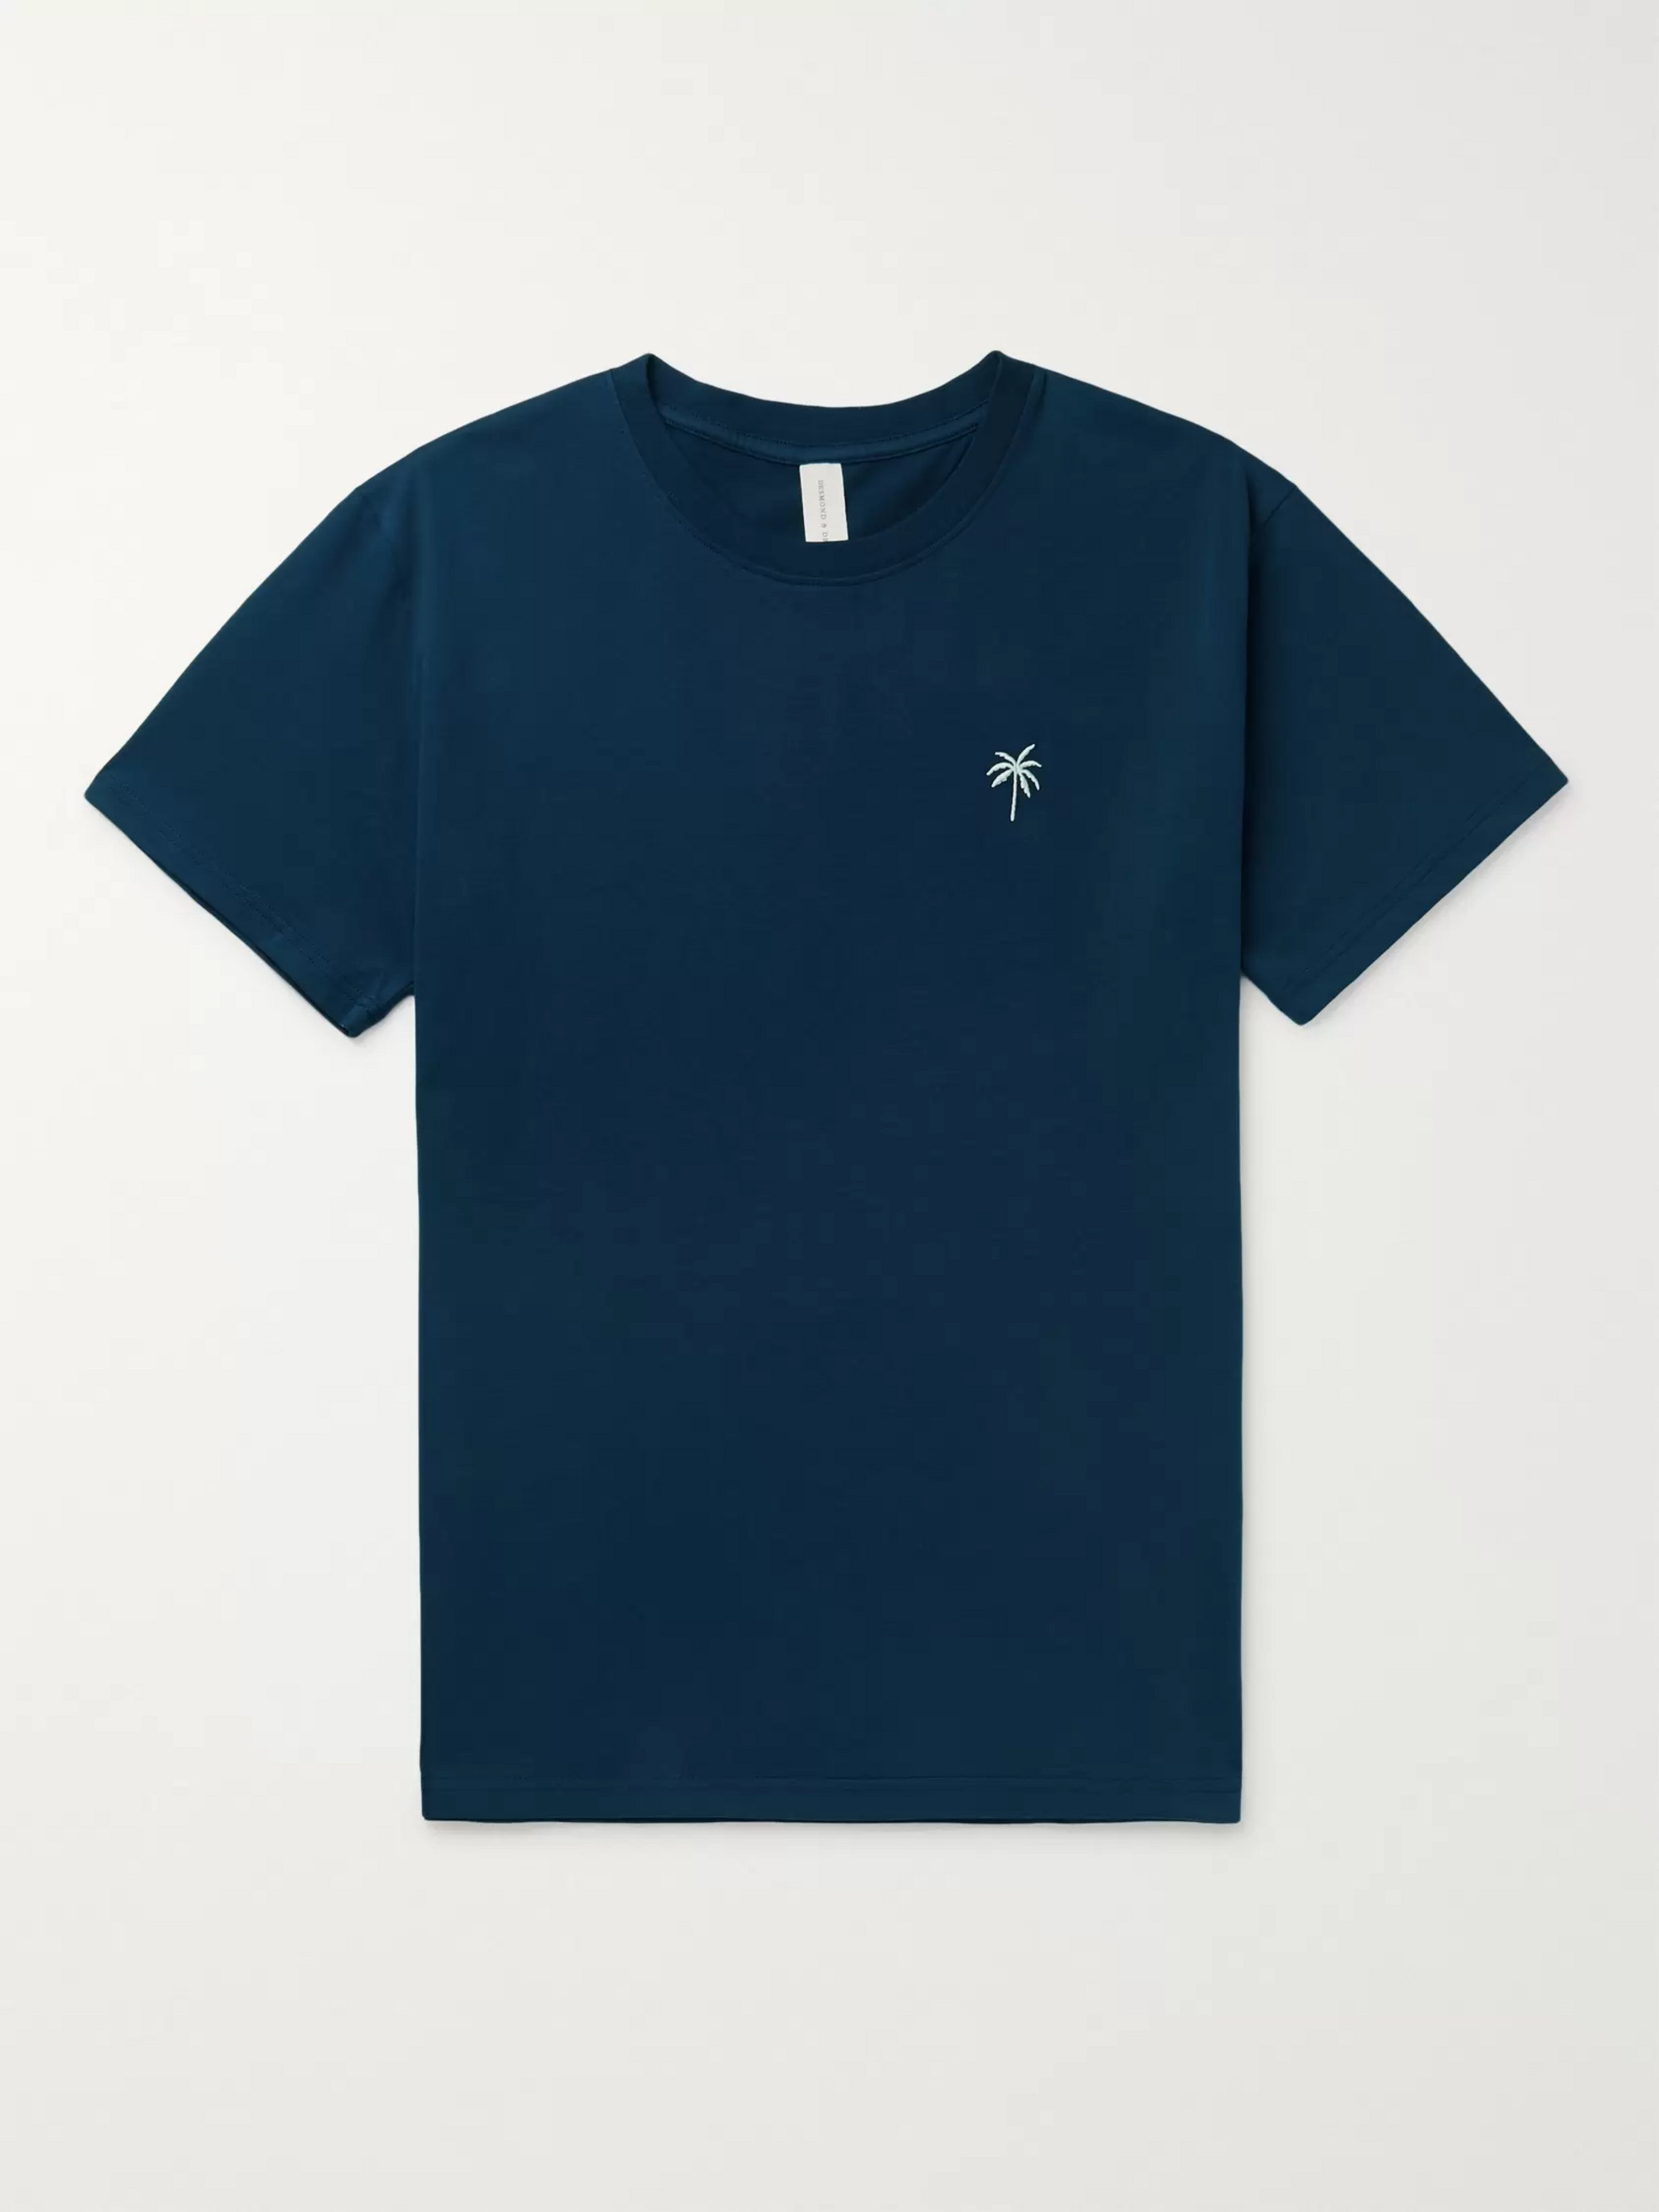 Desmond & Dempsey Embroidered Cotton-Jersey Pyjama T-Shirt